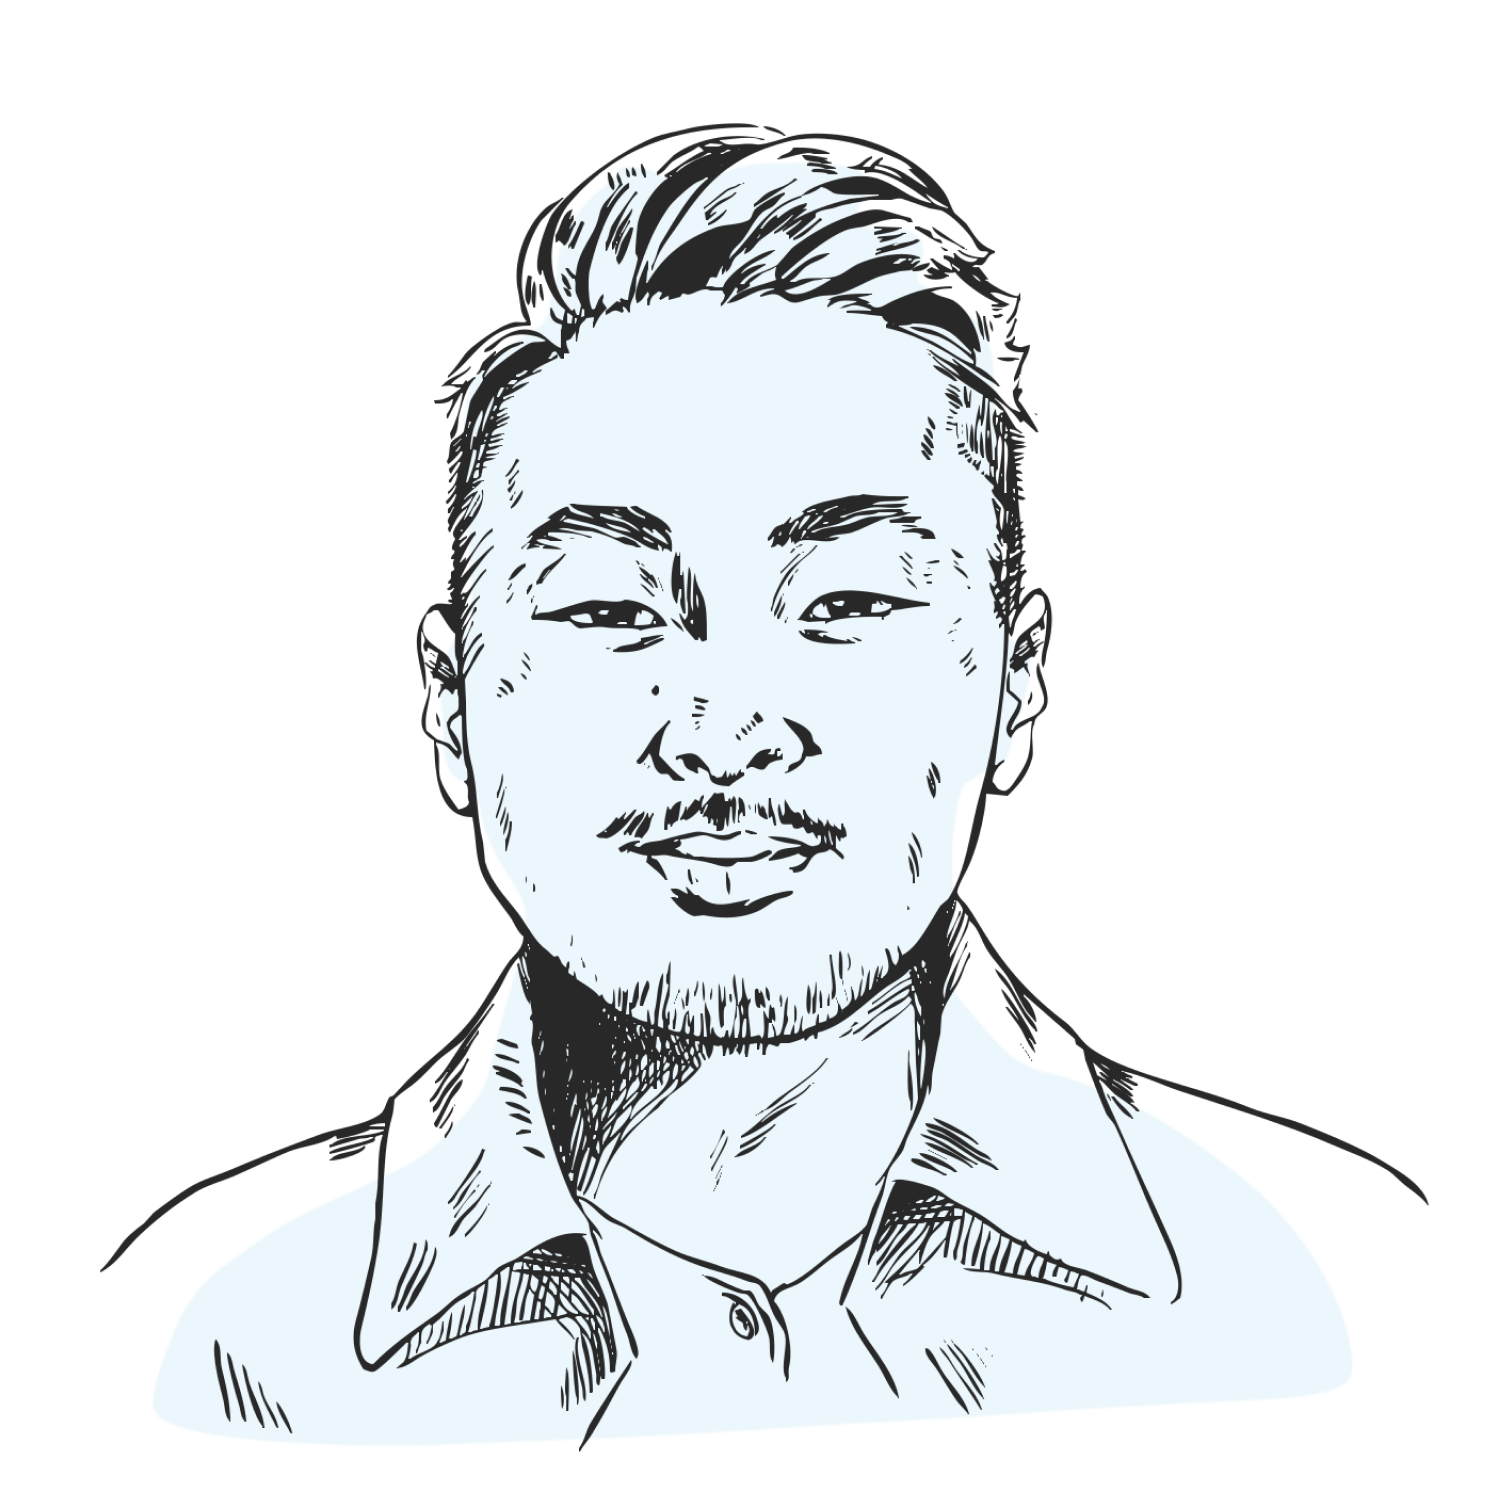 Sam Hsieh Sketch